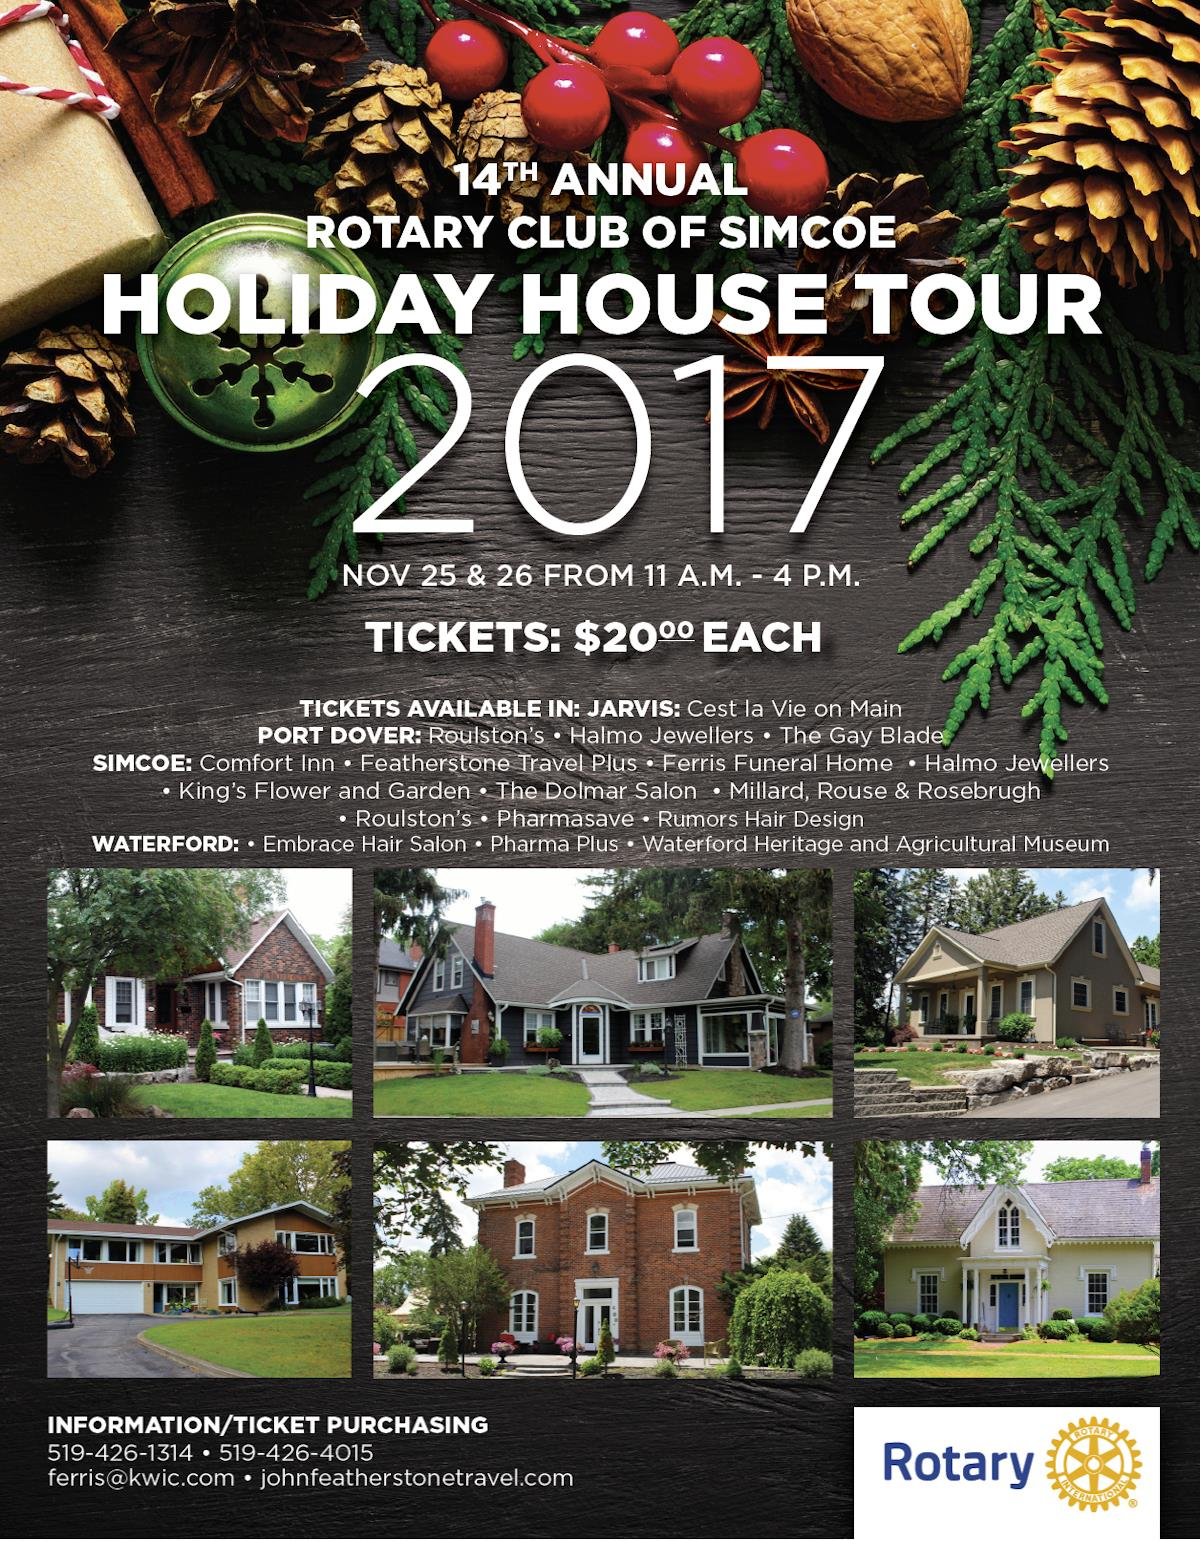 2017 Holiday House Tour Poster